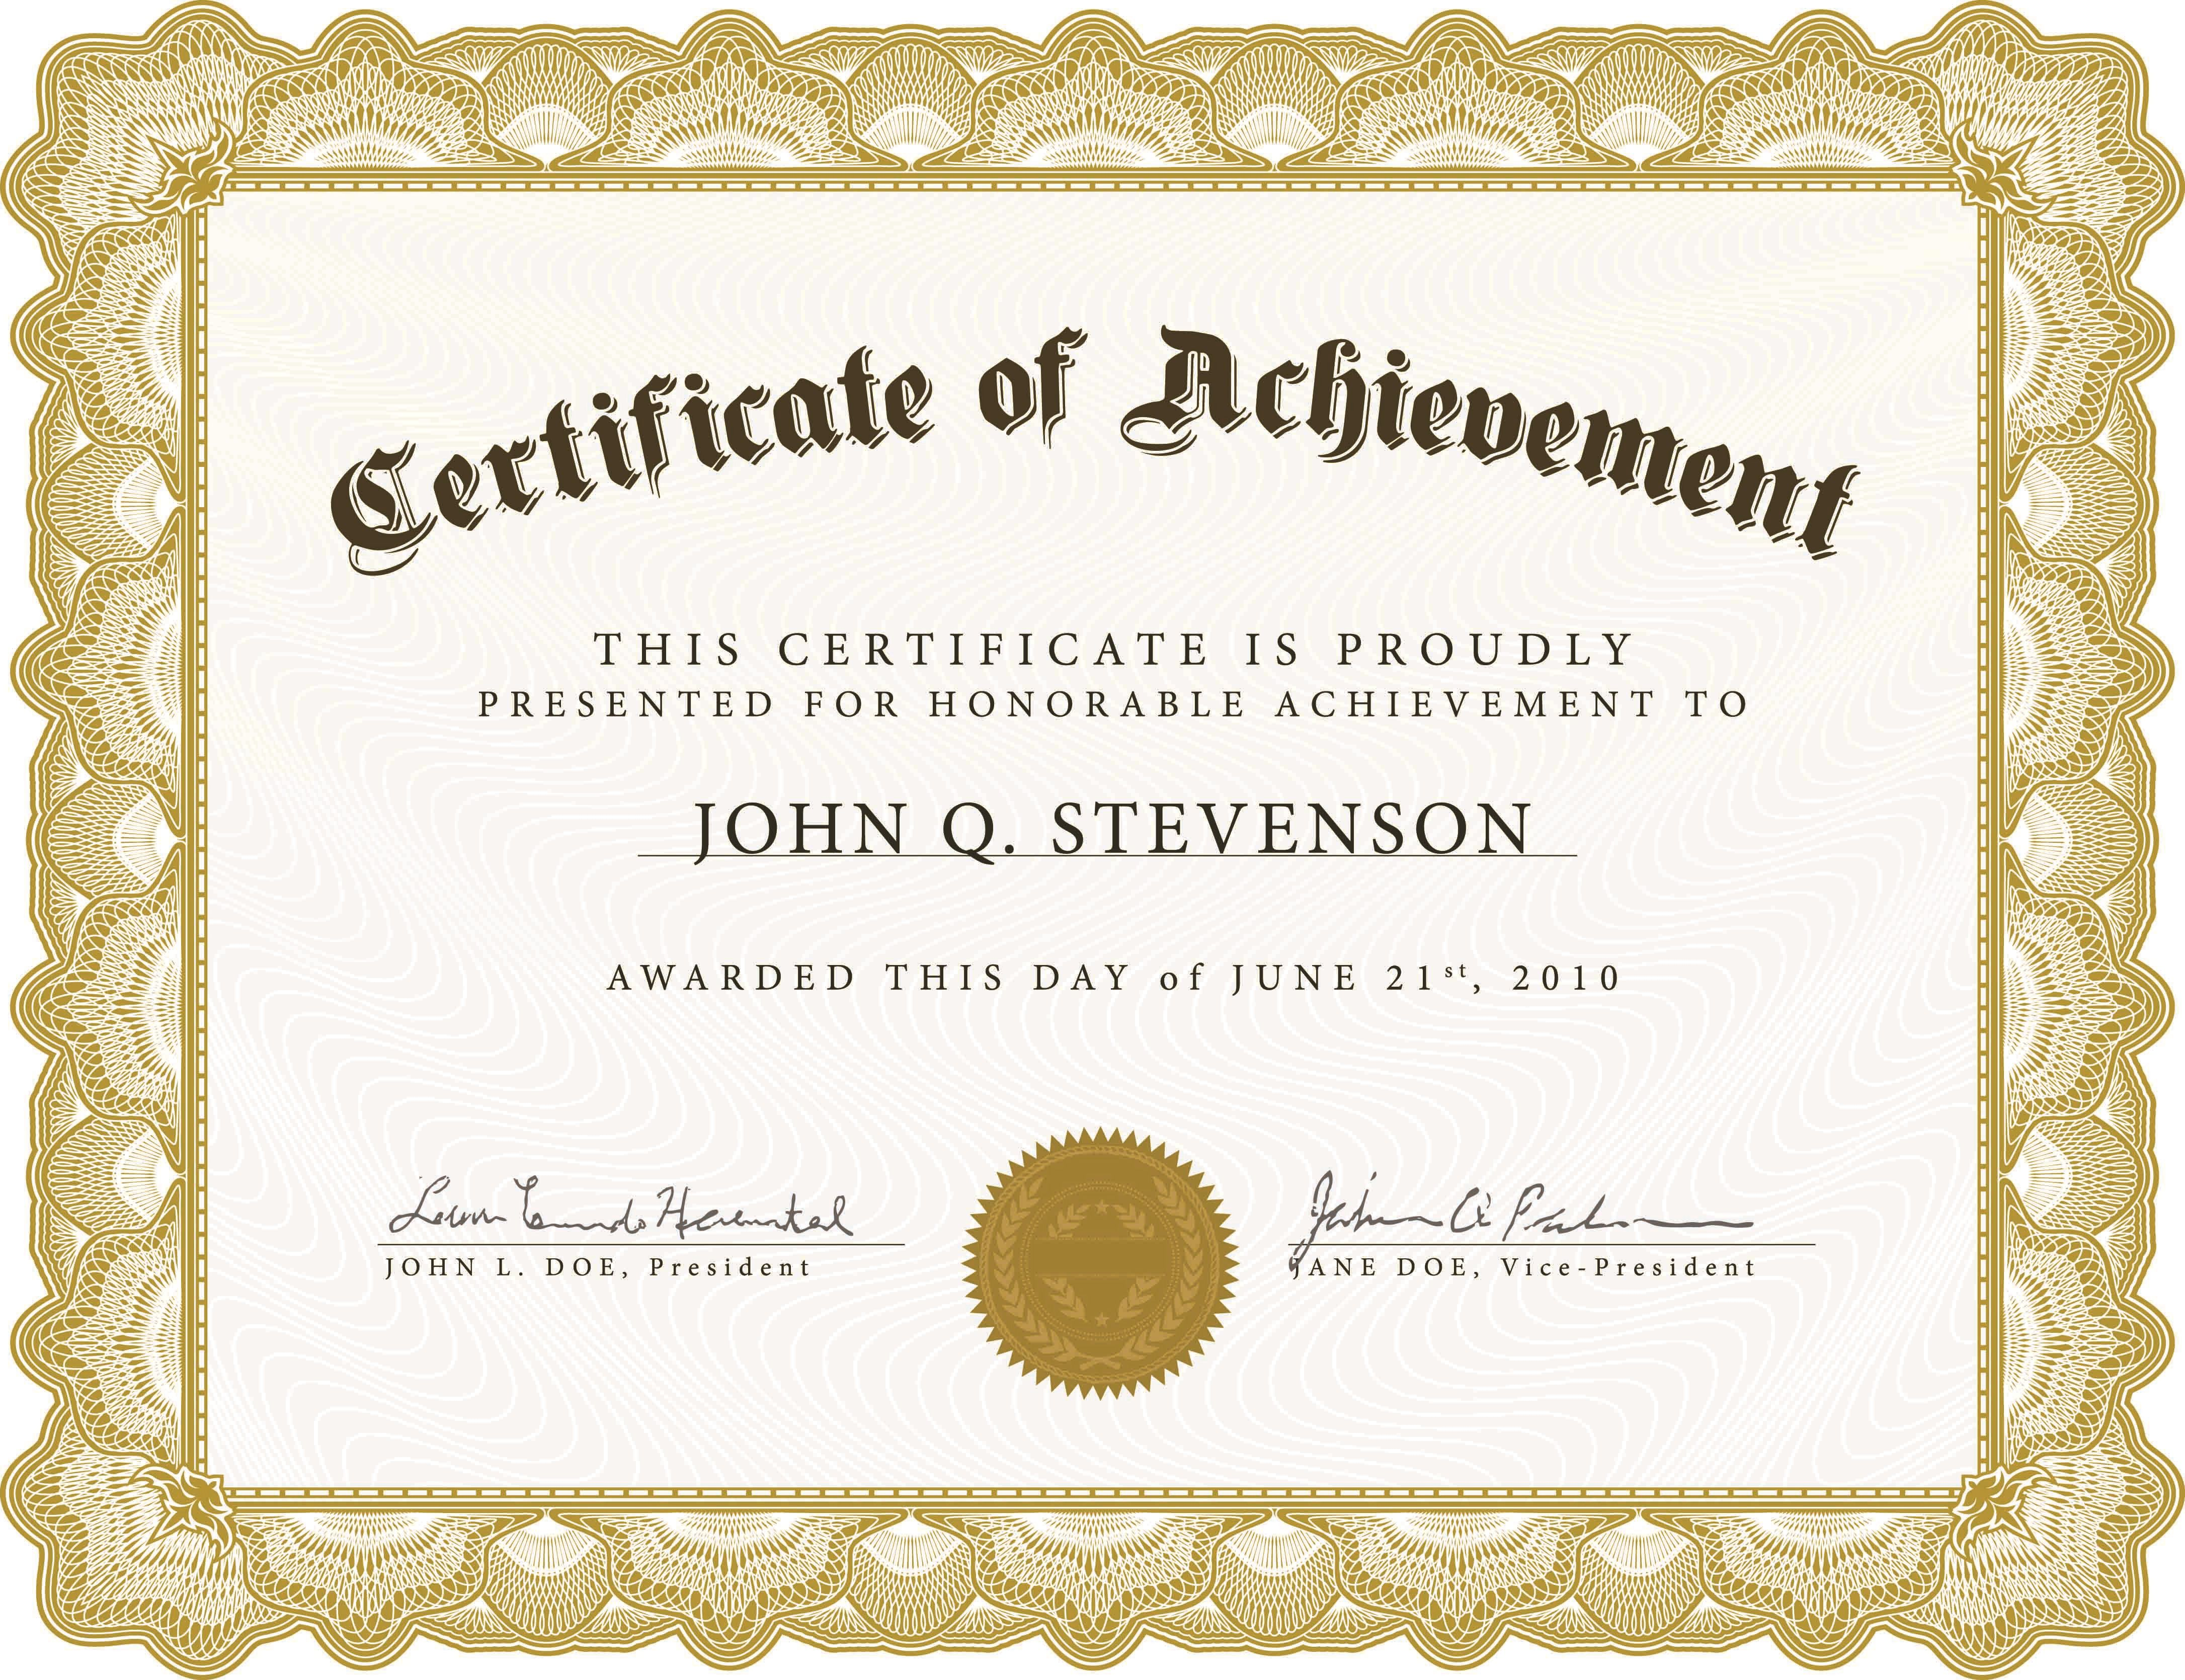 005 Excellent Free Printable Blank Certificate Template Image  Templates Gift Of AchievementFull